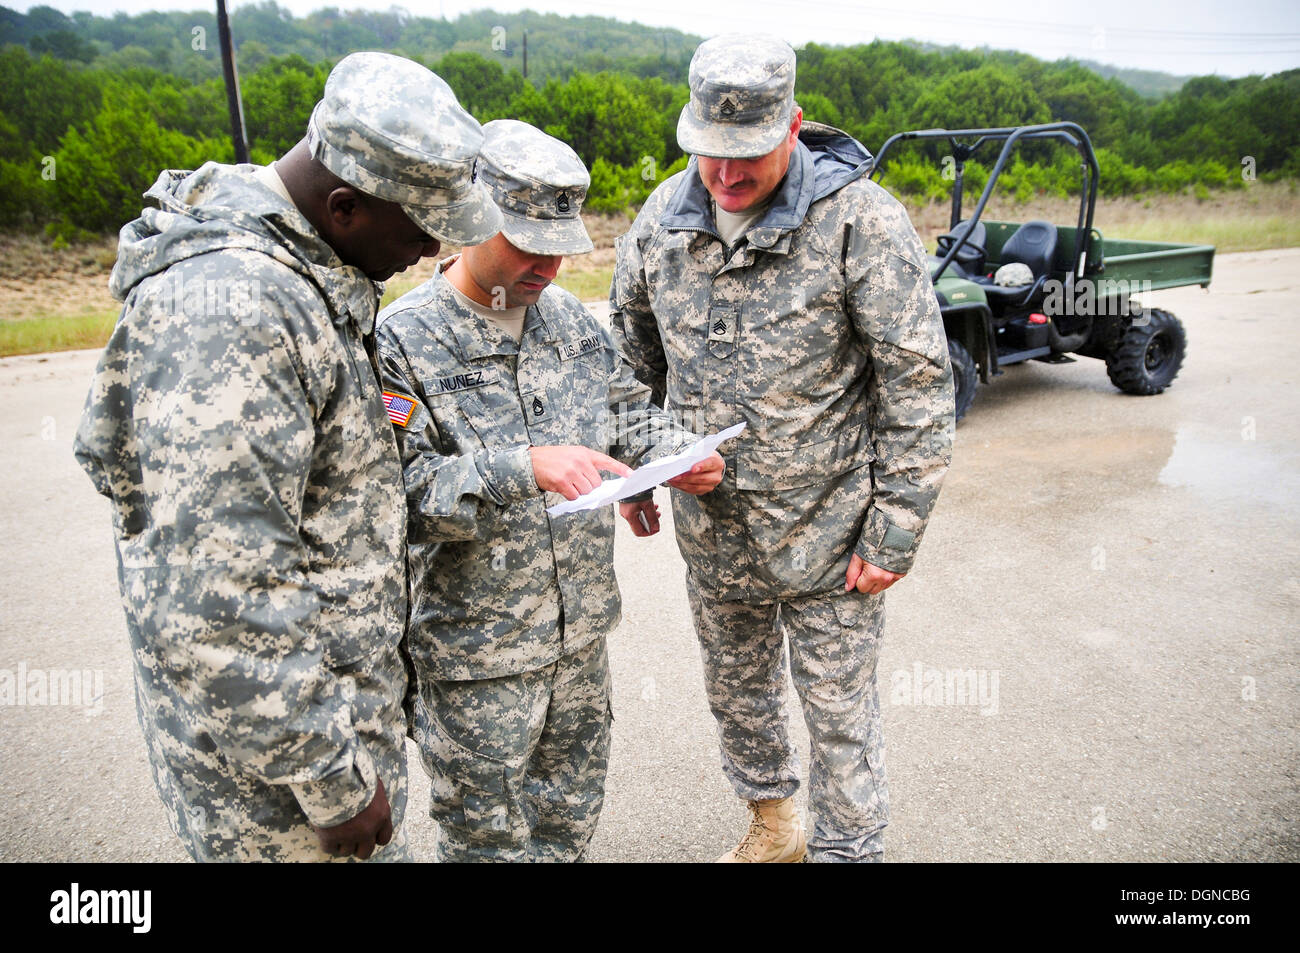 (from left to right) Sgt. 1st Class Scoefield McMillan, with 13th Sustainment Command (Expeditionary) Support Operations' Integr - Stock Image